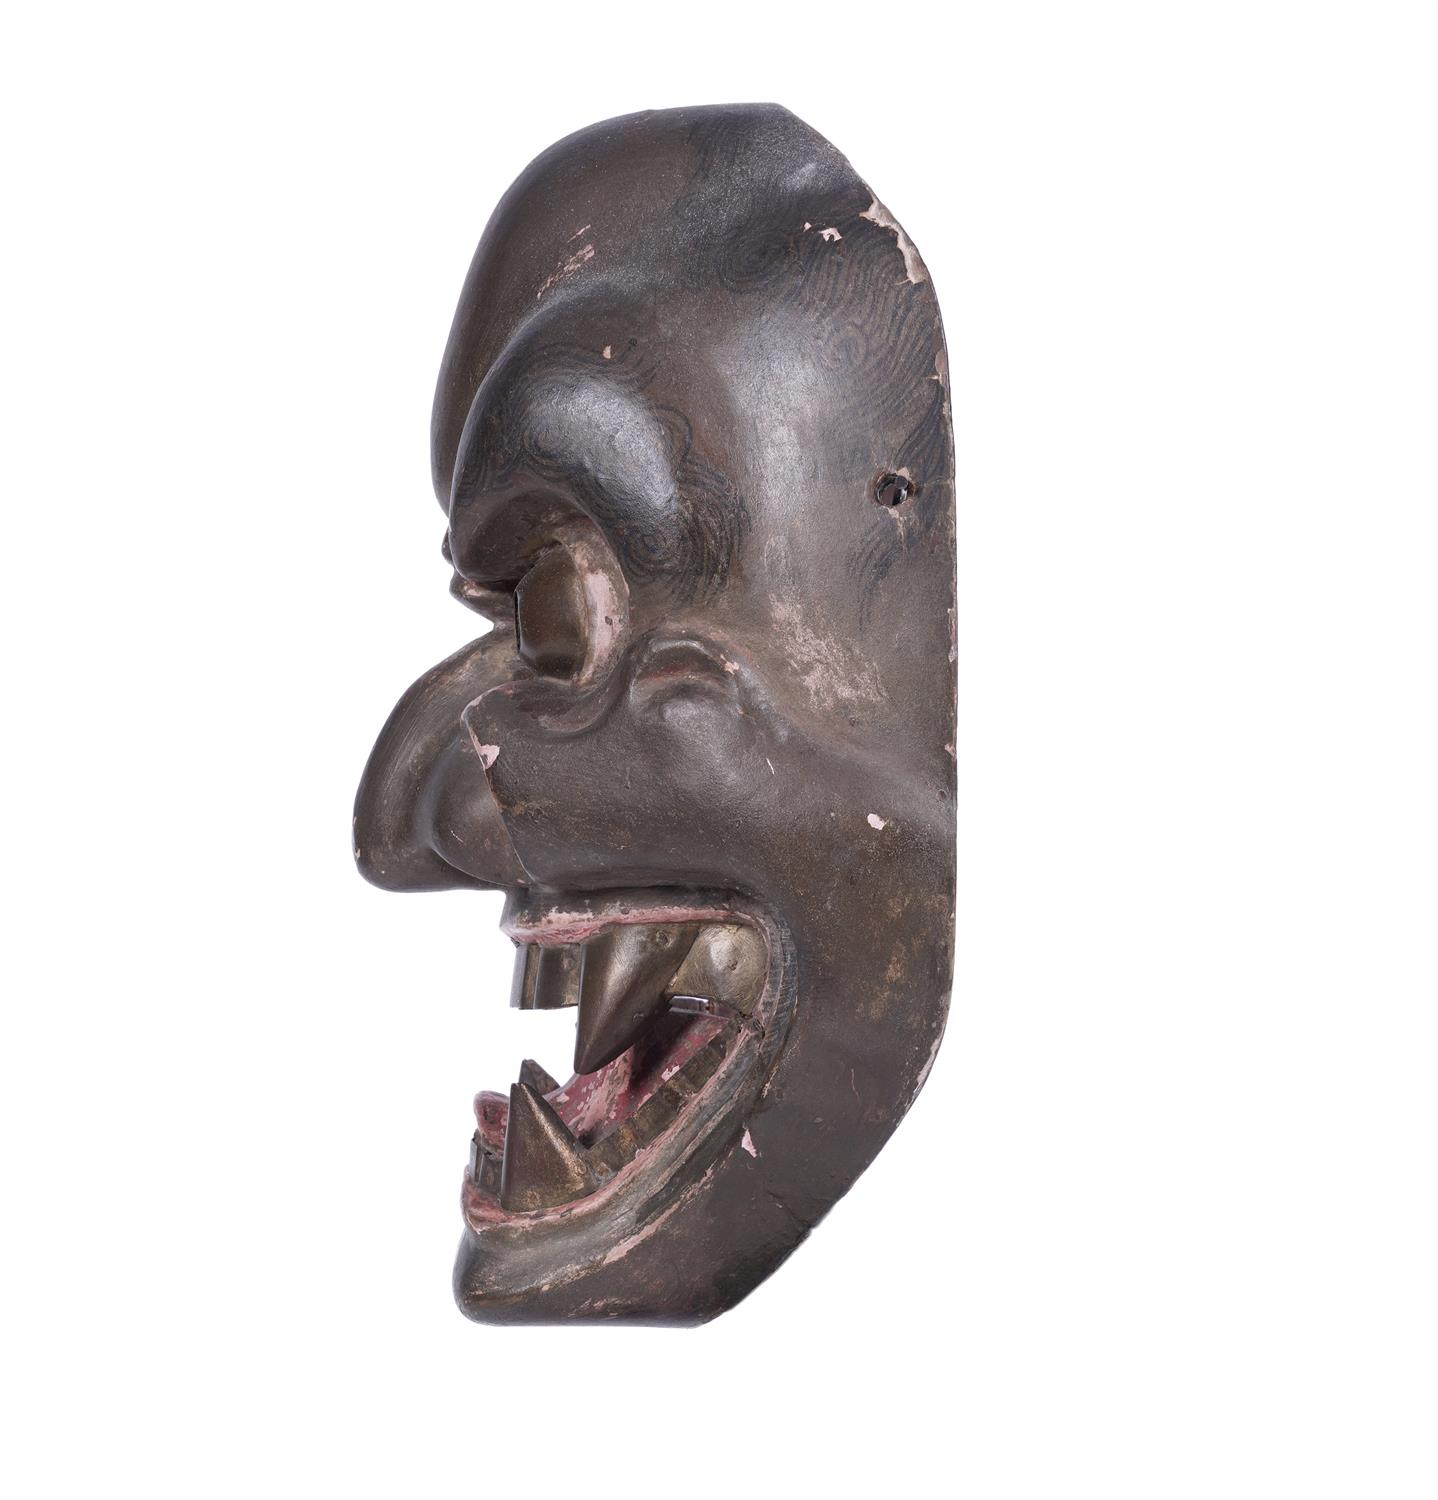 .A LACQUERED WOODEN MASK Japan, 19th century H: 21 cm - w: 15,5 cm Provenance: A curated selection - Image 4 of 4